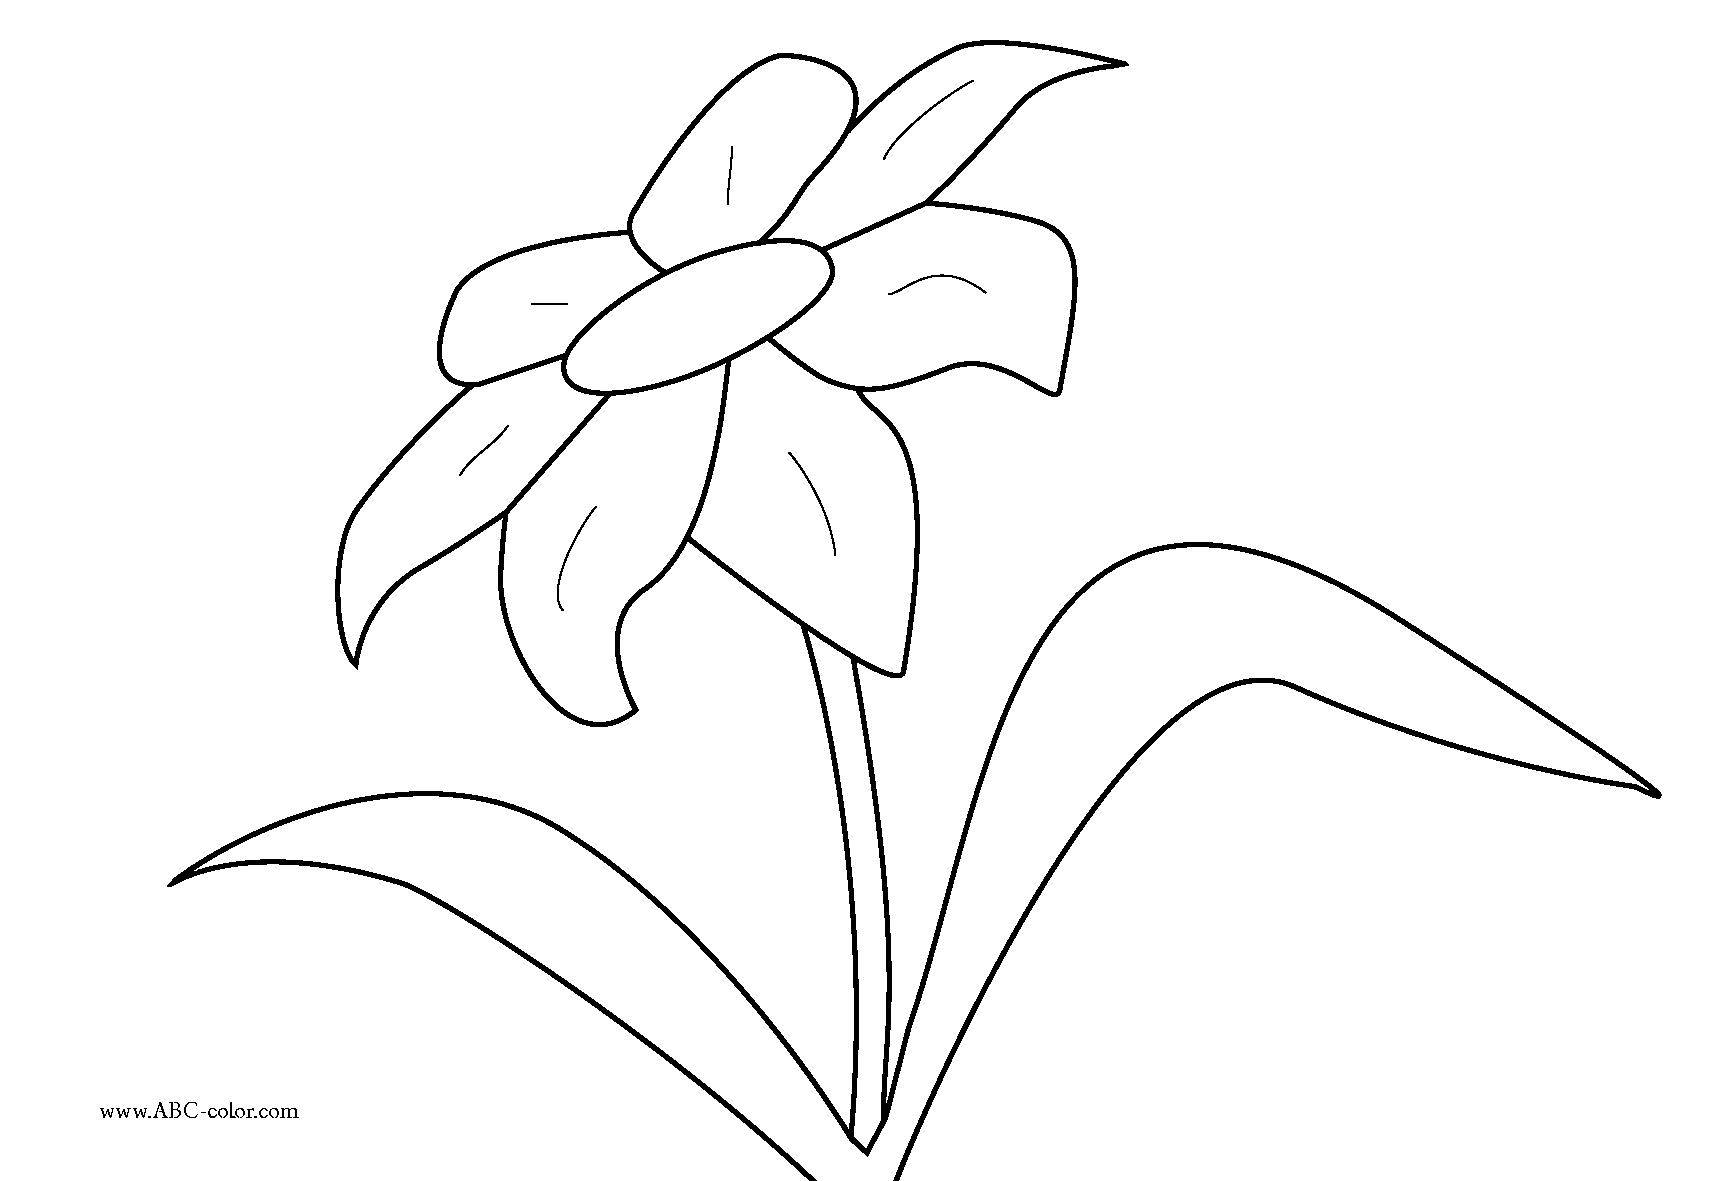 http://www.abc-color.com/image/coloring/flowers/001/flower-001/flower-001-bitmap-coloring.png